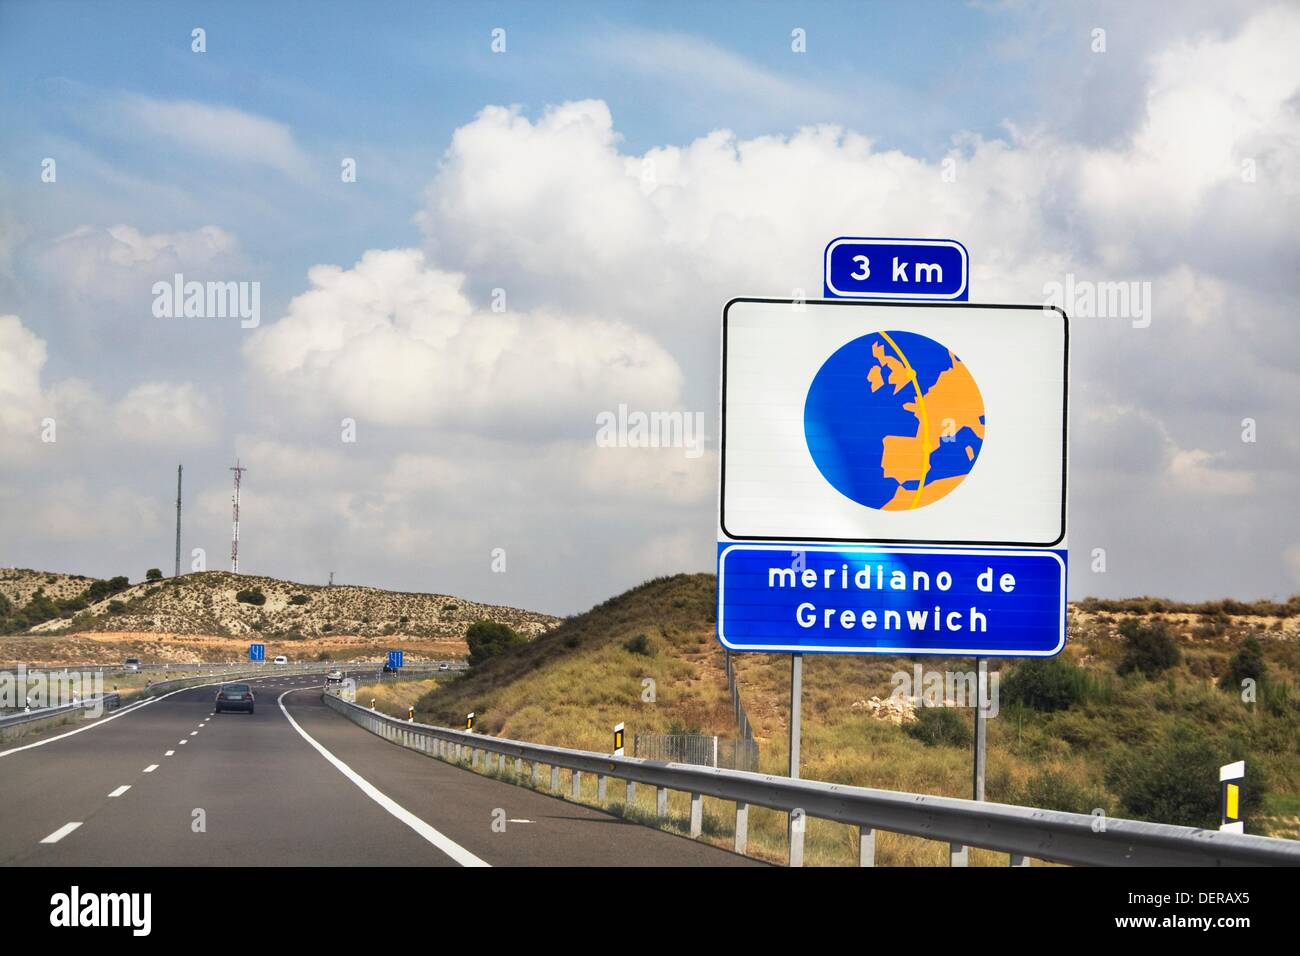 Indication of Greenwich Meridian Arc  AP-2, Spain - Stock Image